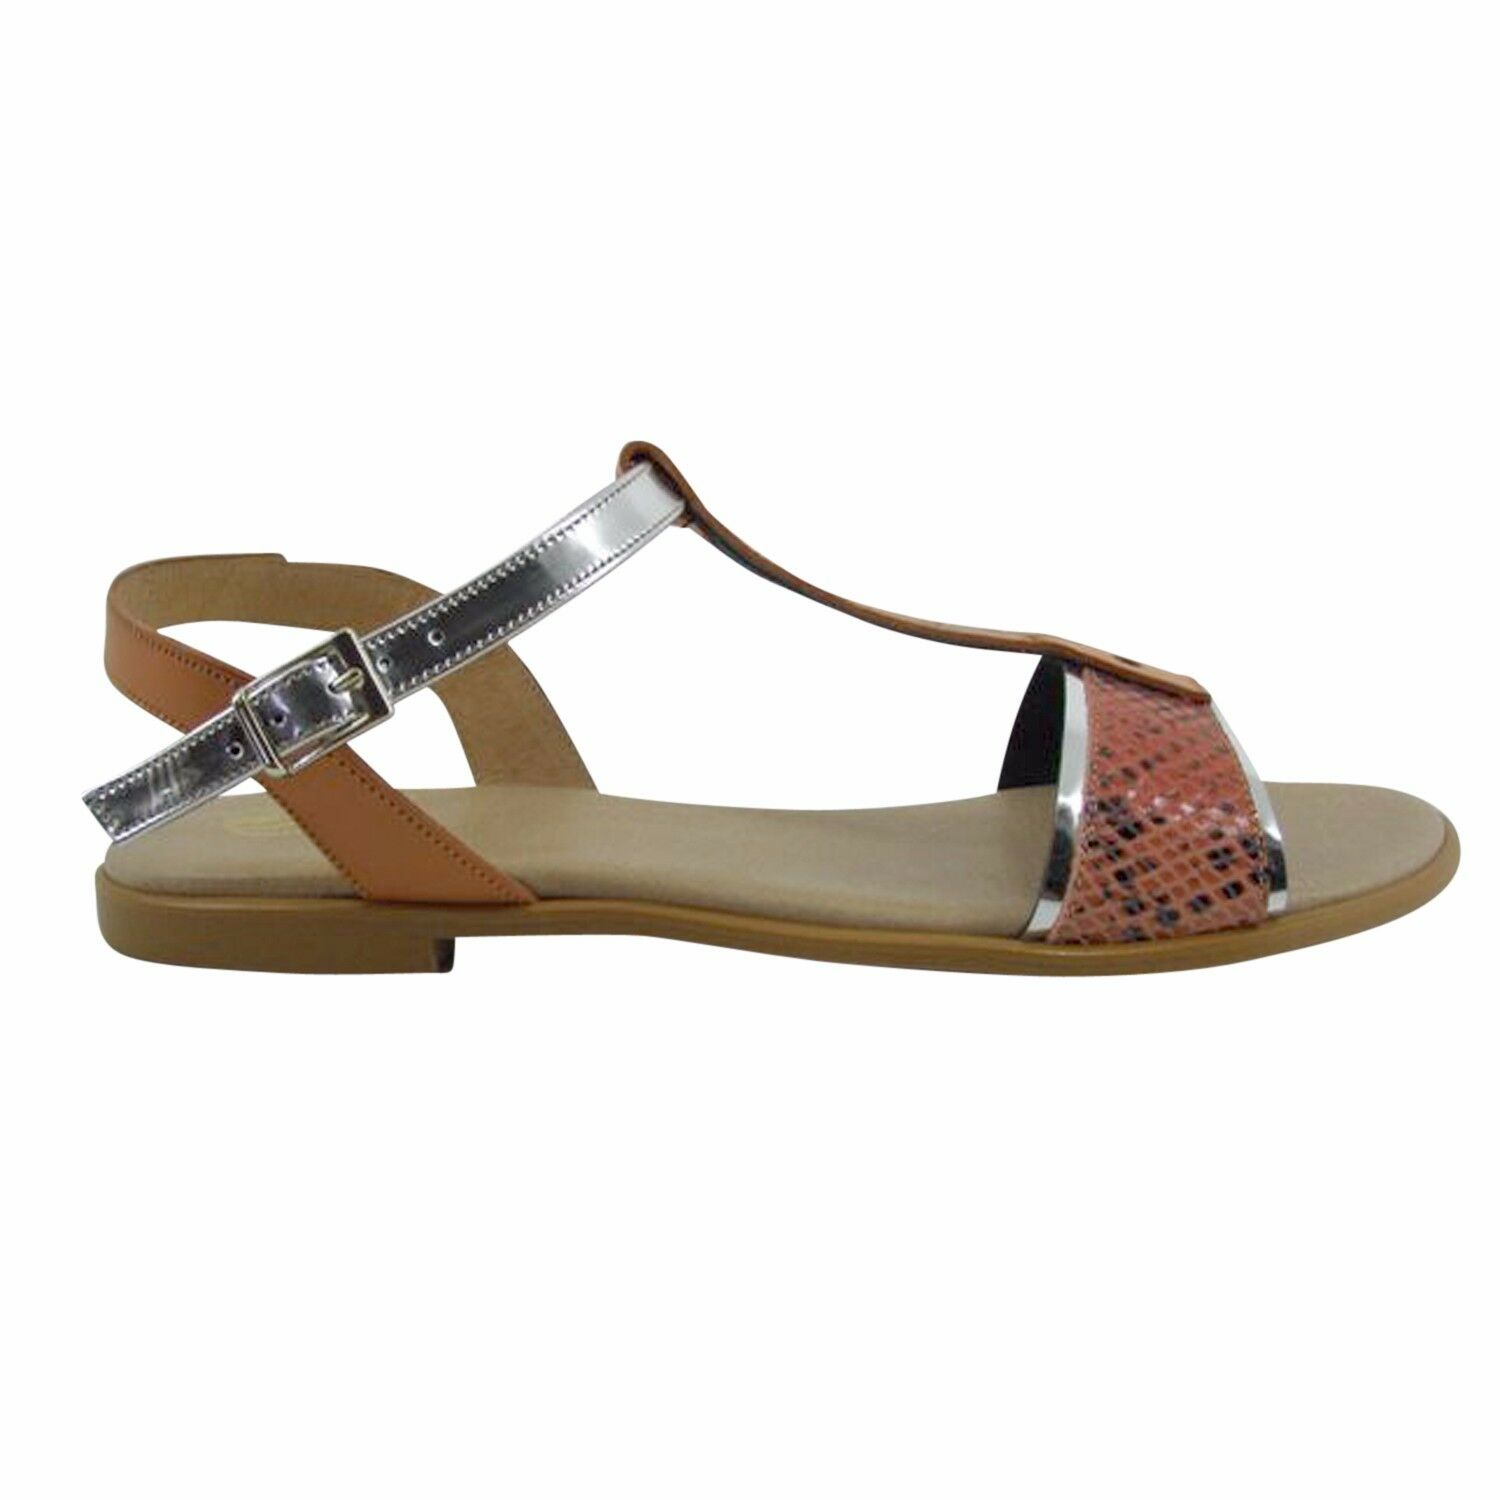 Size 10 Orange and Metallic Flat TBar Made Sandals Made TBar in Spain Big large size shoes cda80c